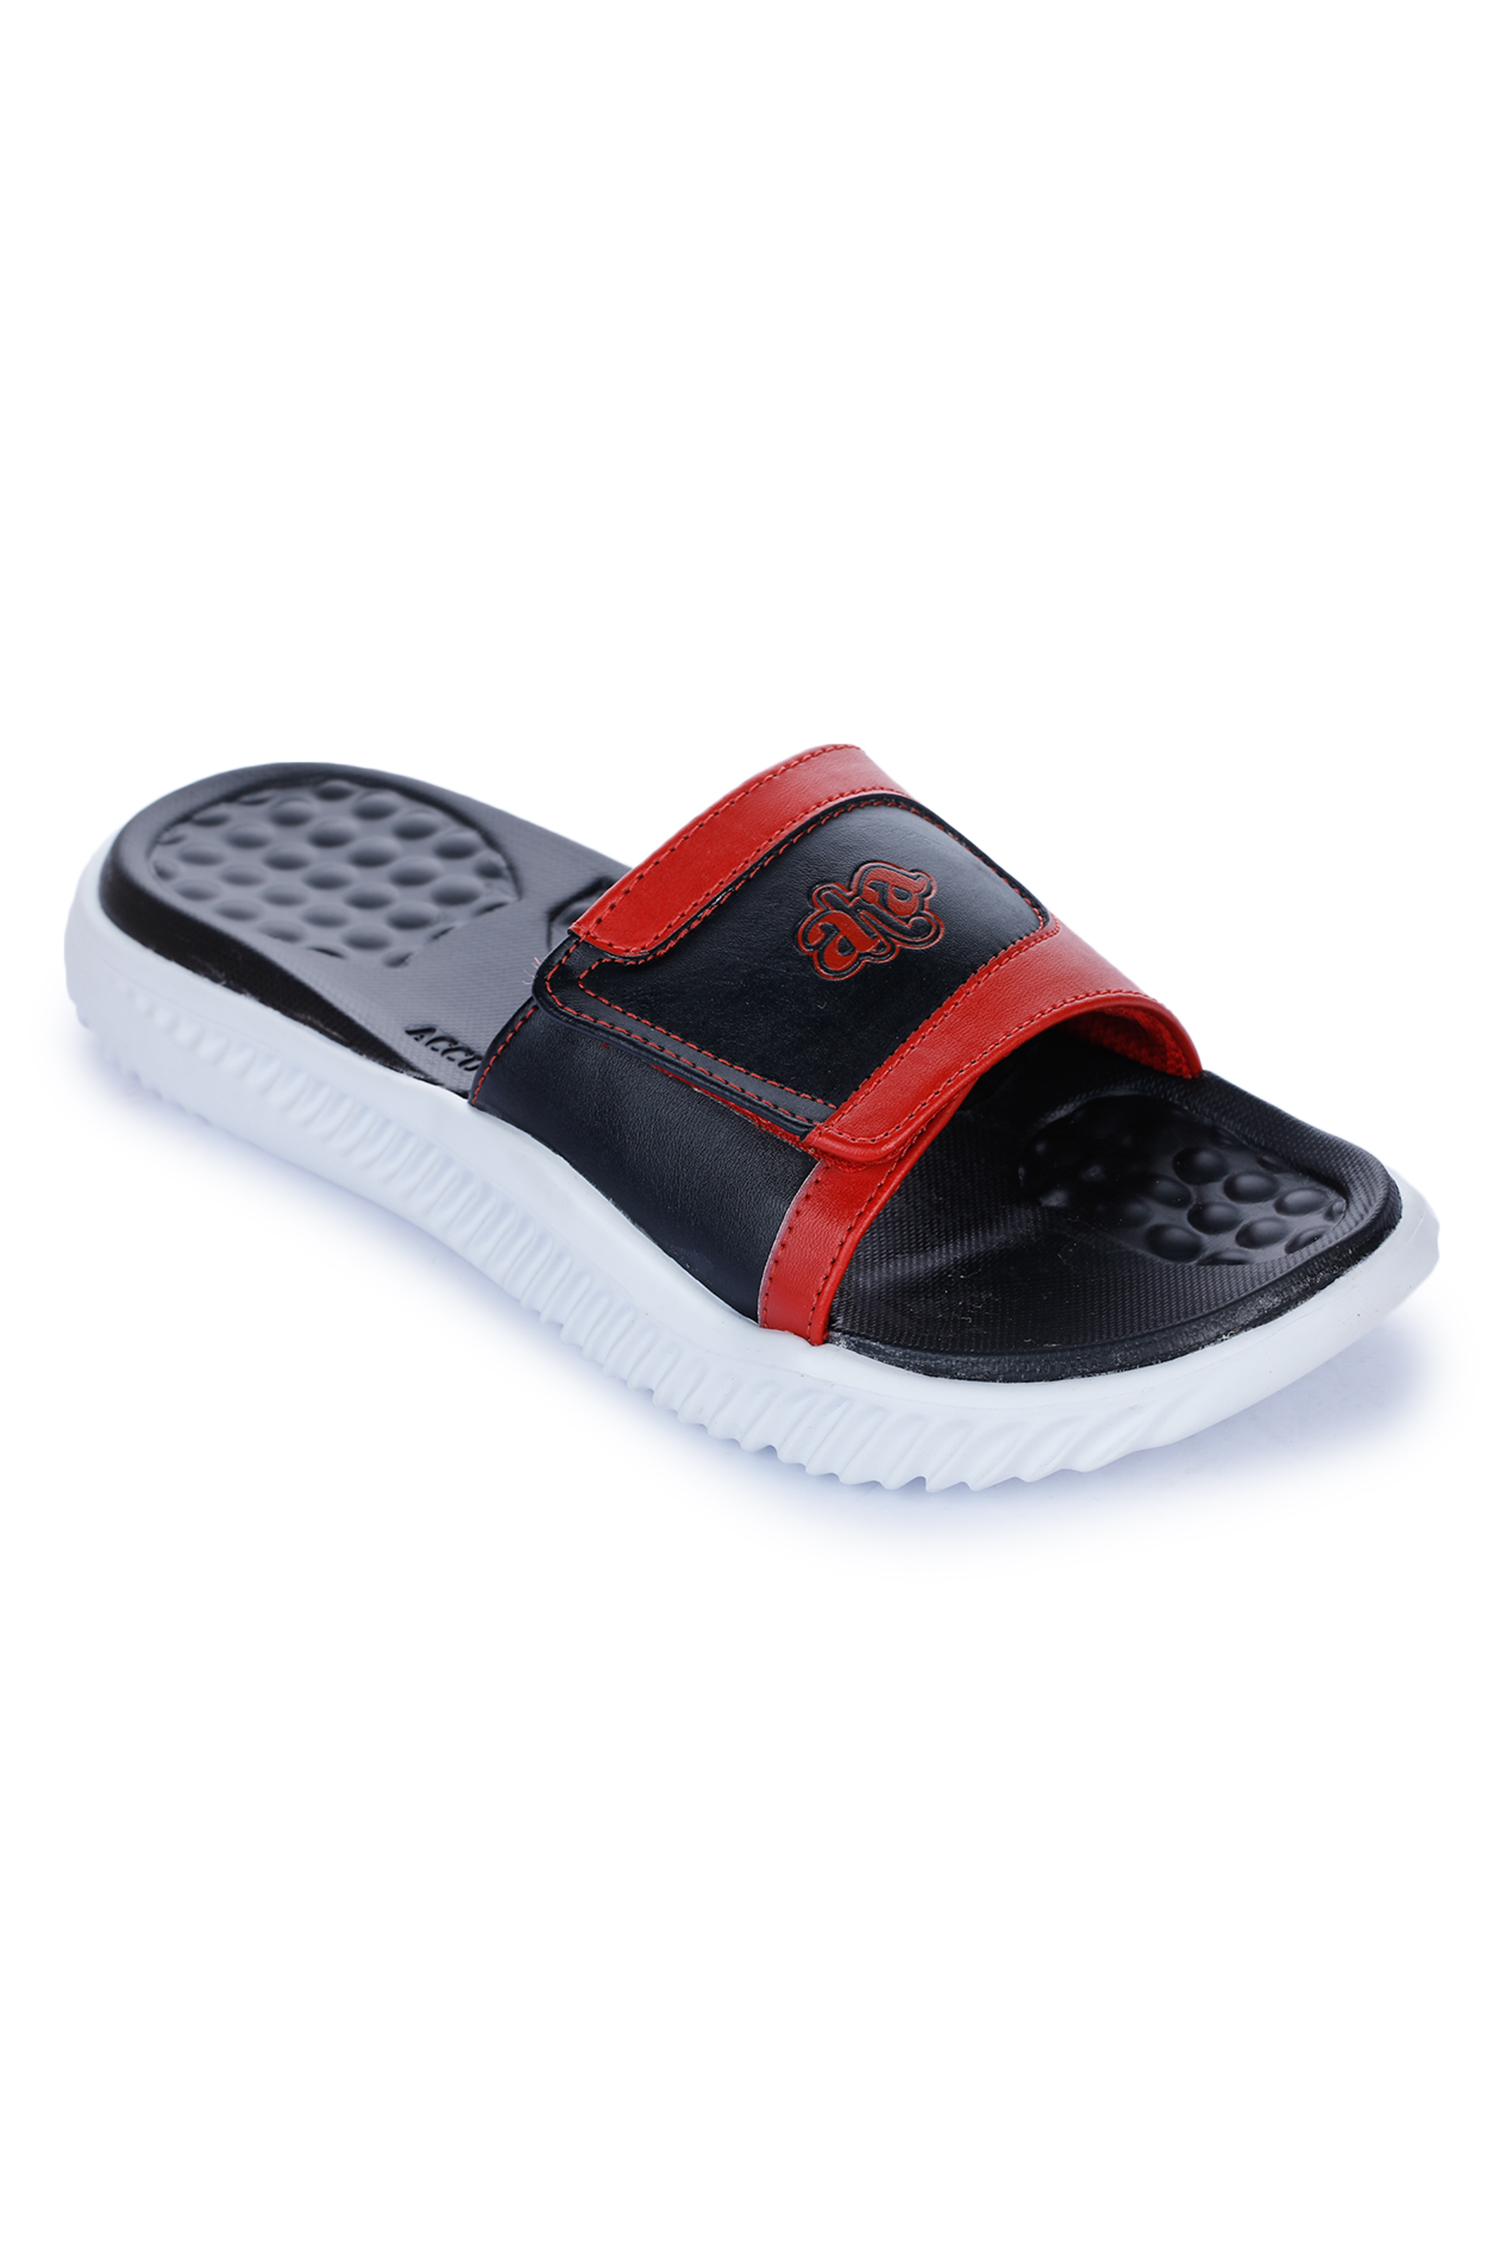 Liberty | Liberty A-HA Red Casual Slippers STAMINA-2_Red For - Men